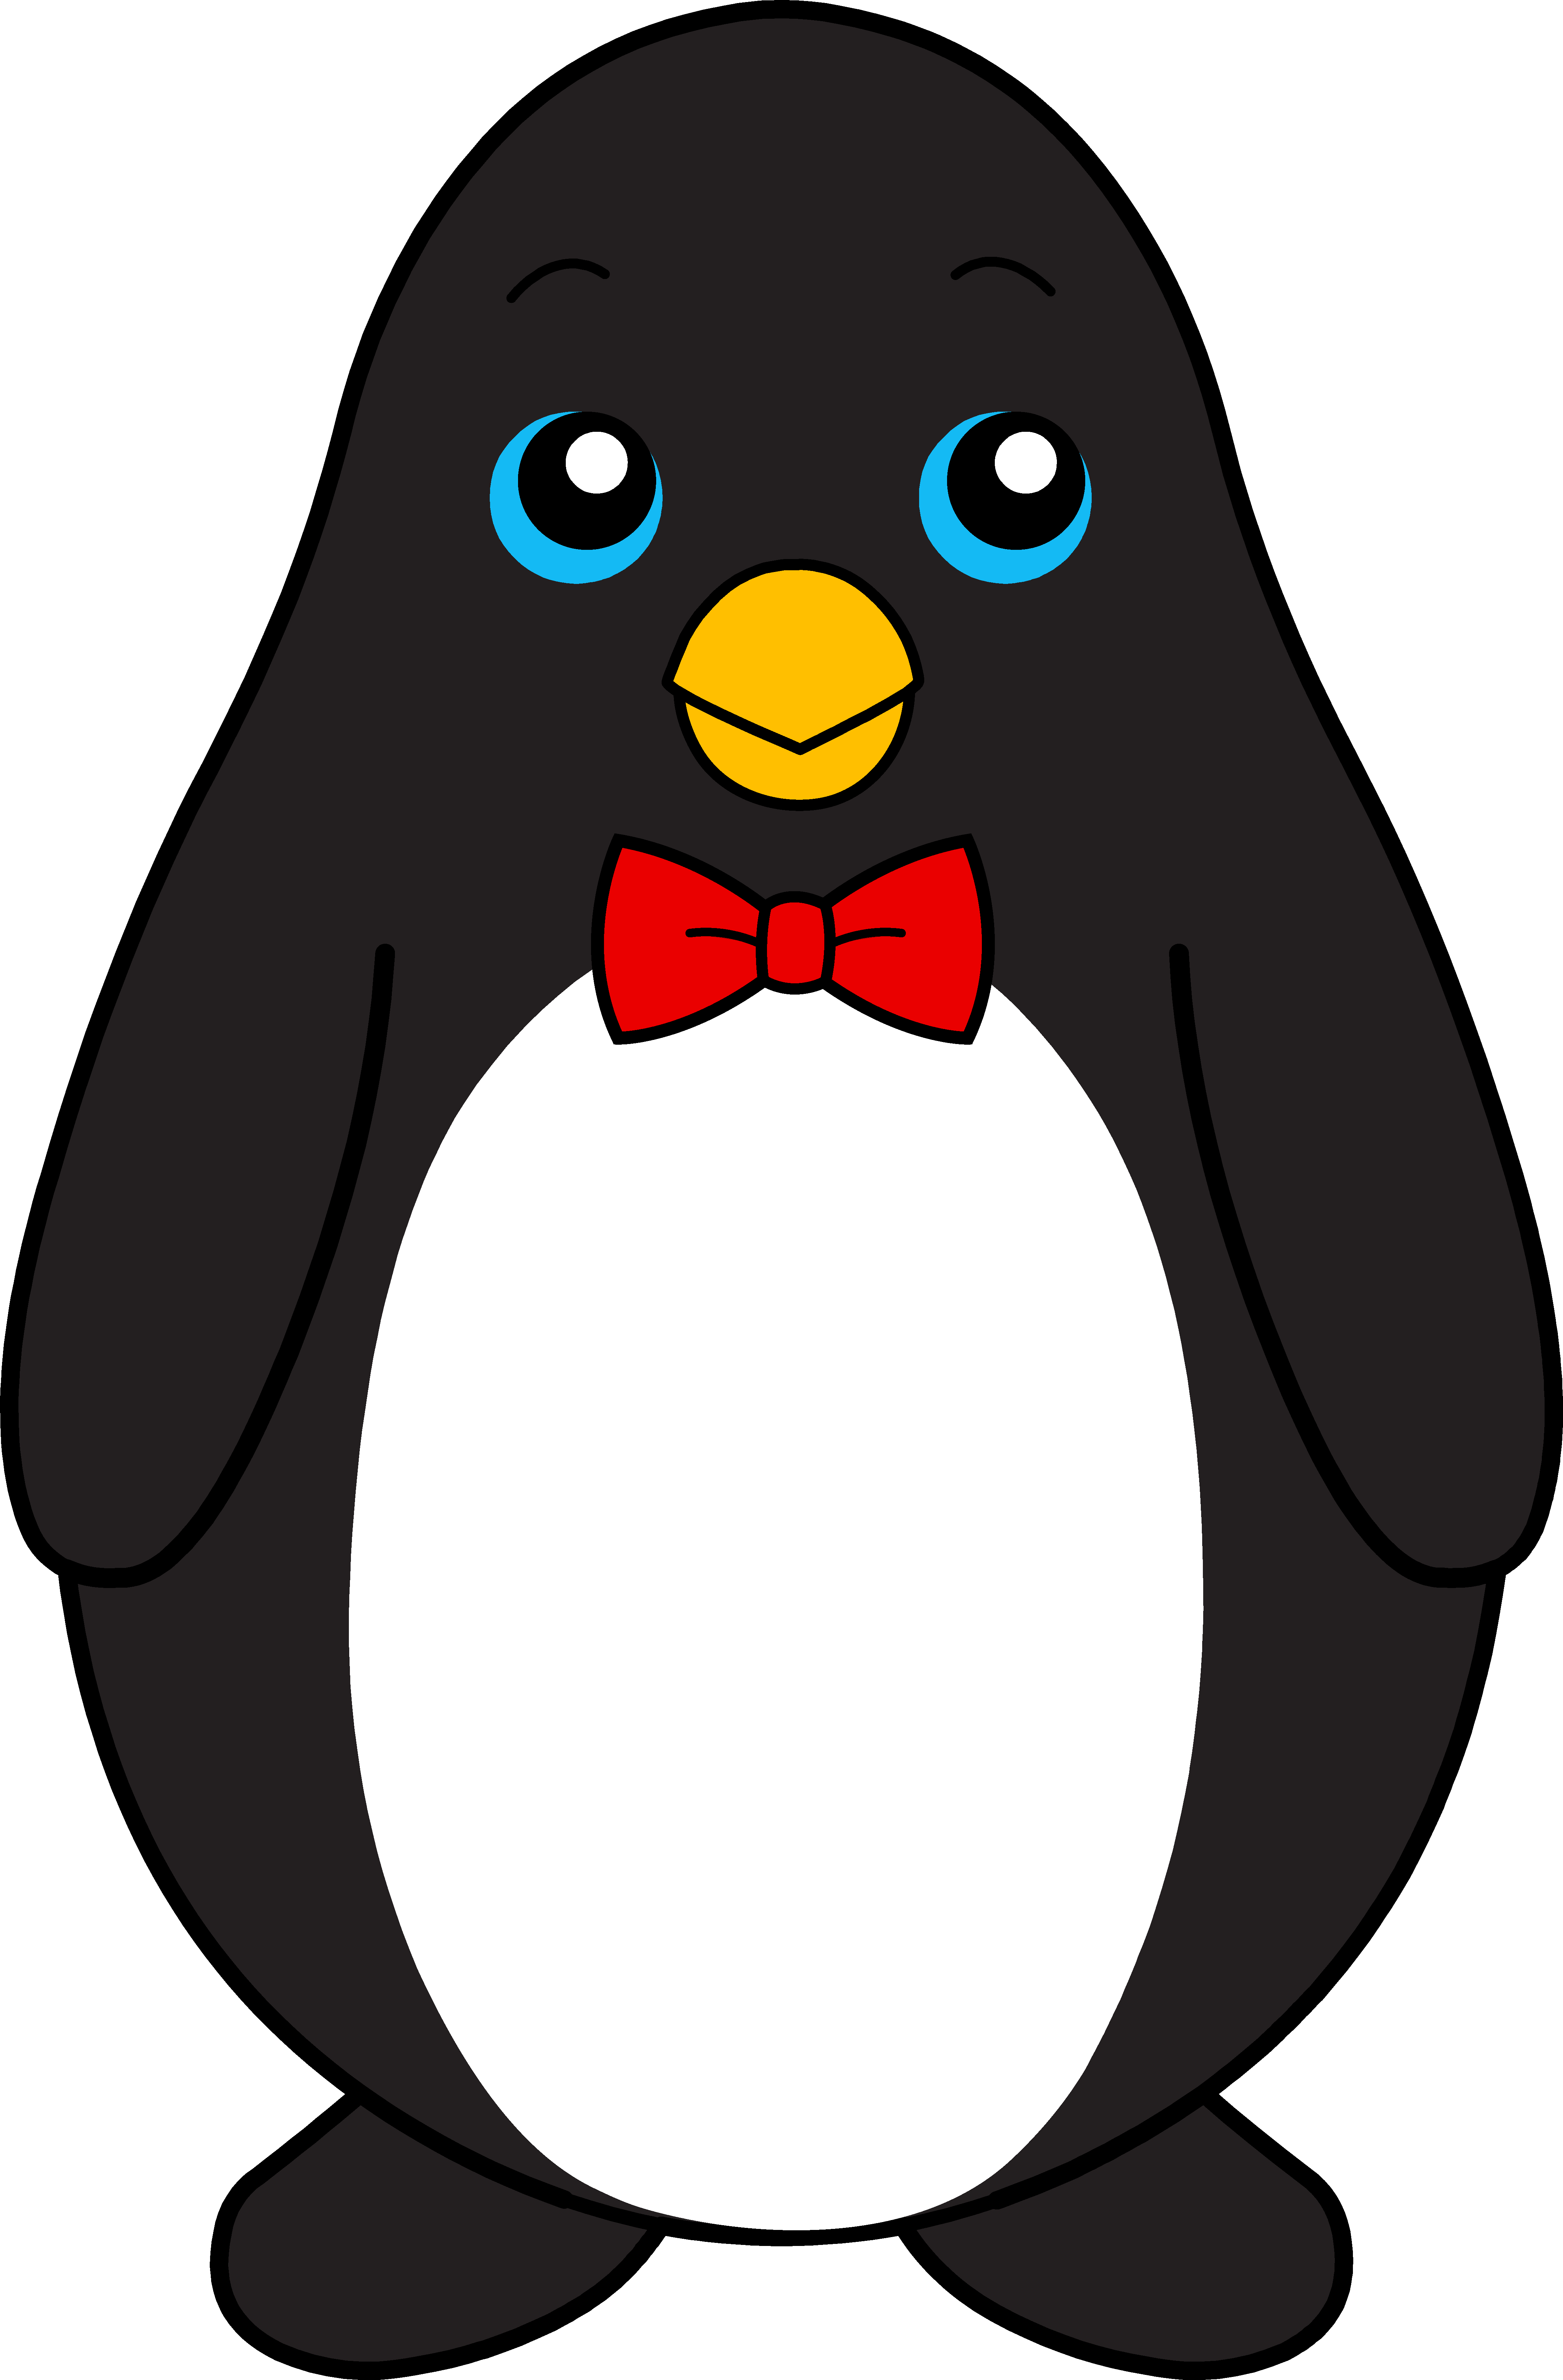 Christmas penguins clipart jpg free library Cute Black Penguin With Red Bow Tie - Free Clip Art | Penguin Party ... jpg free library